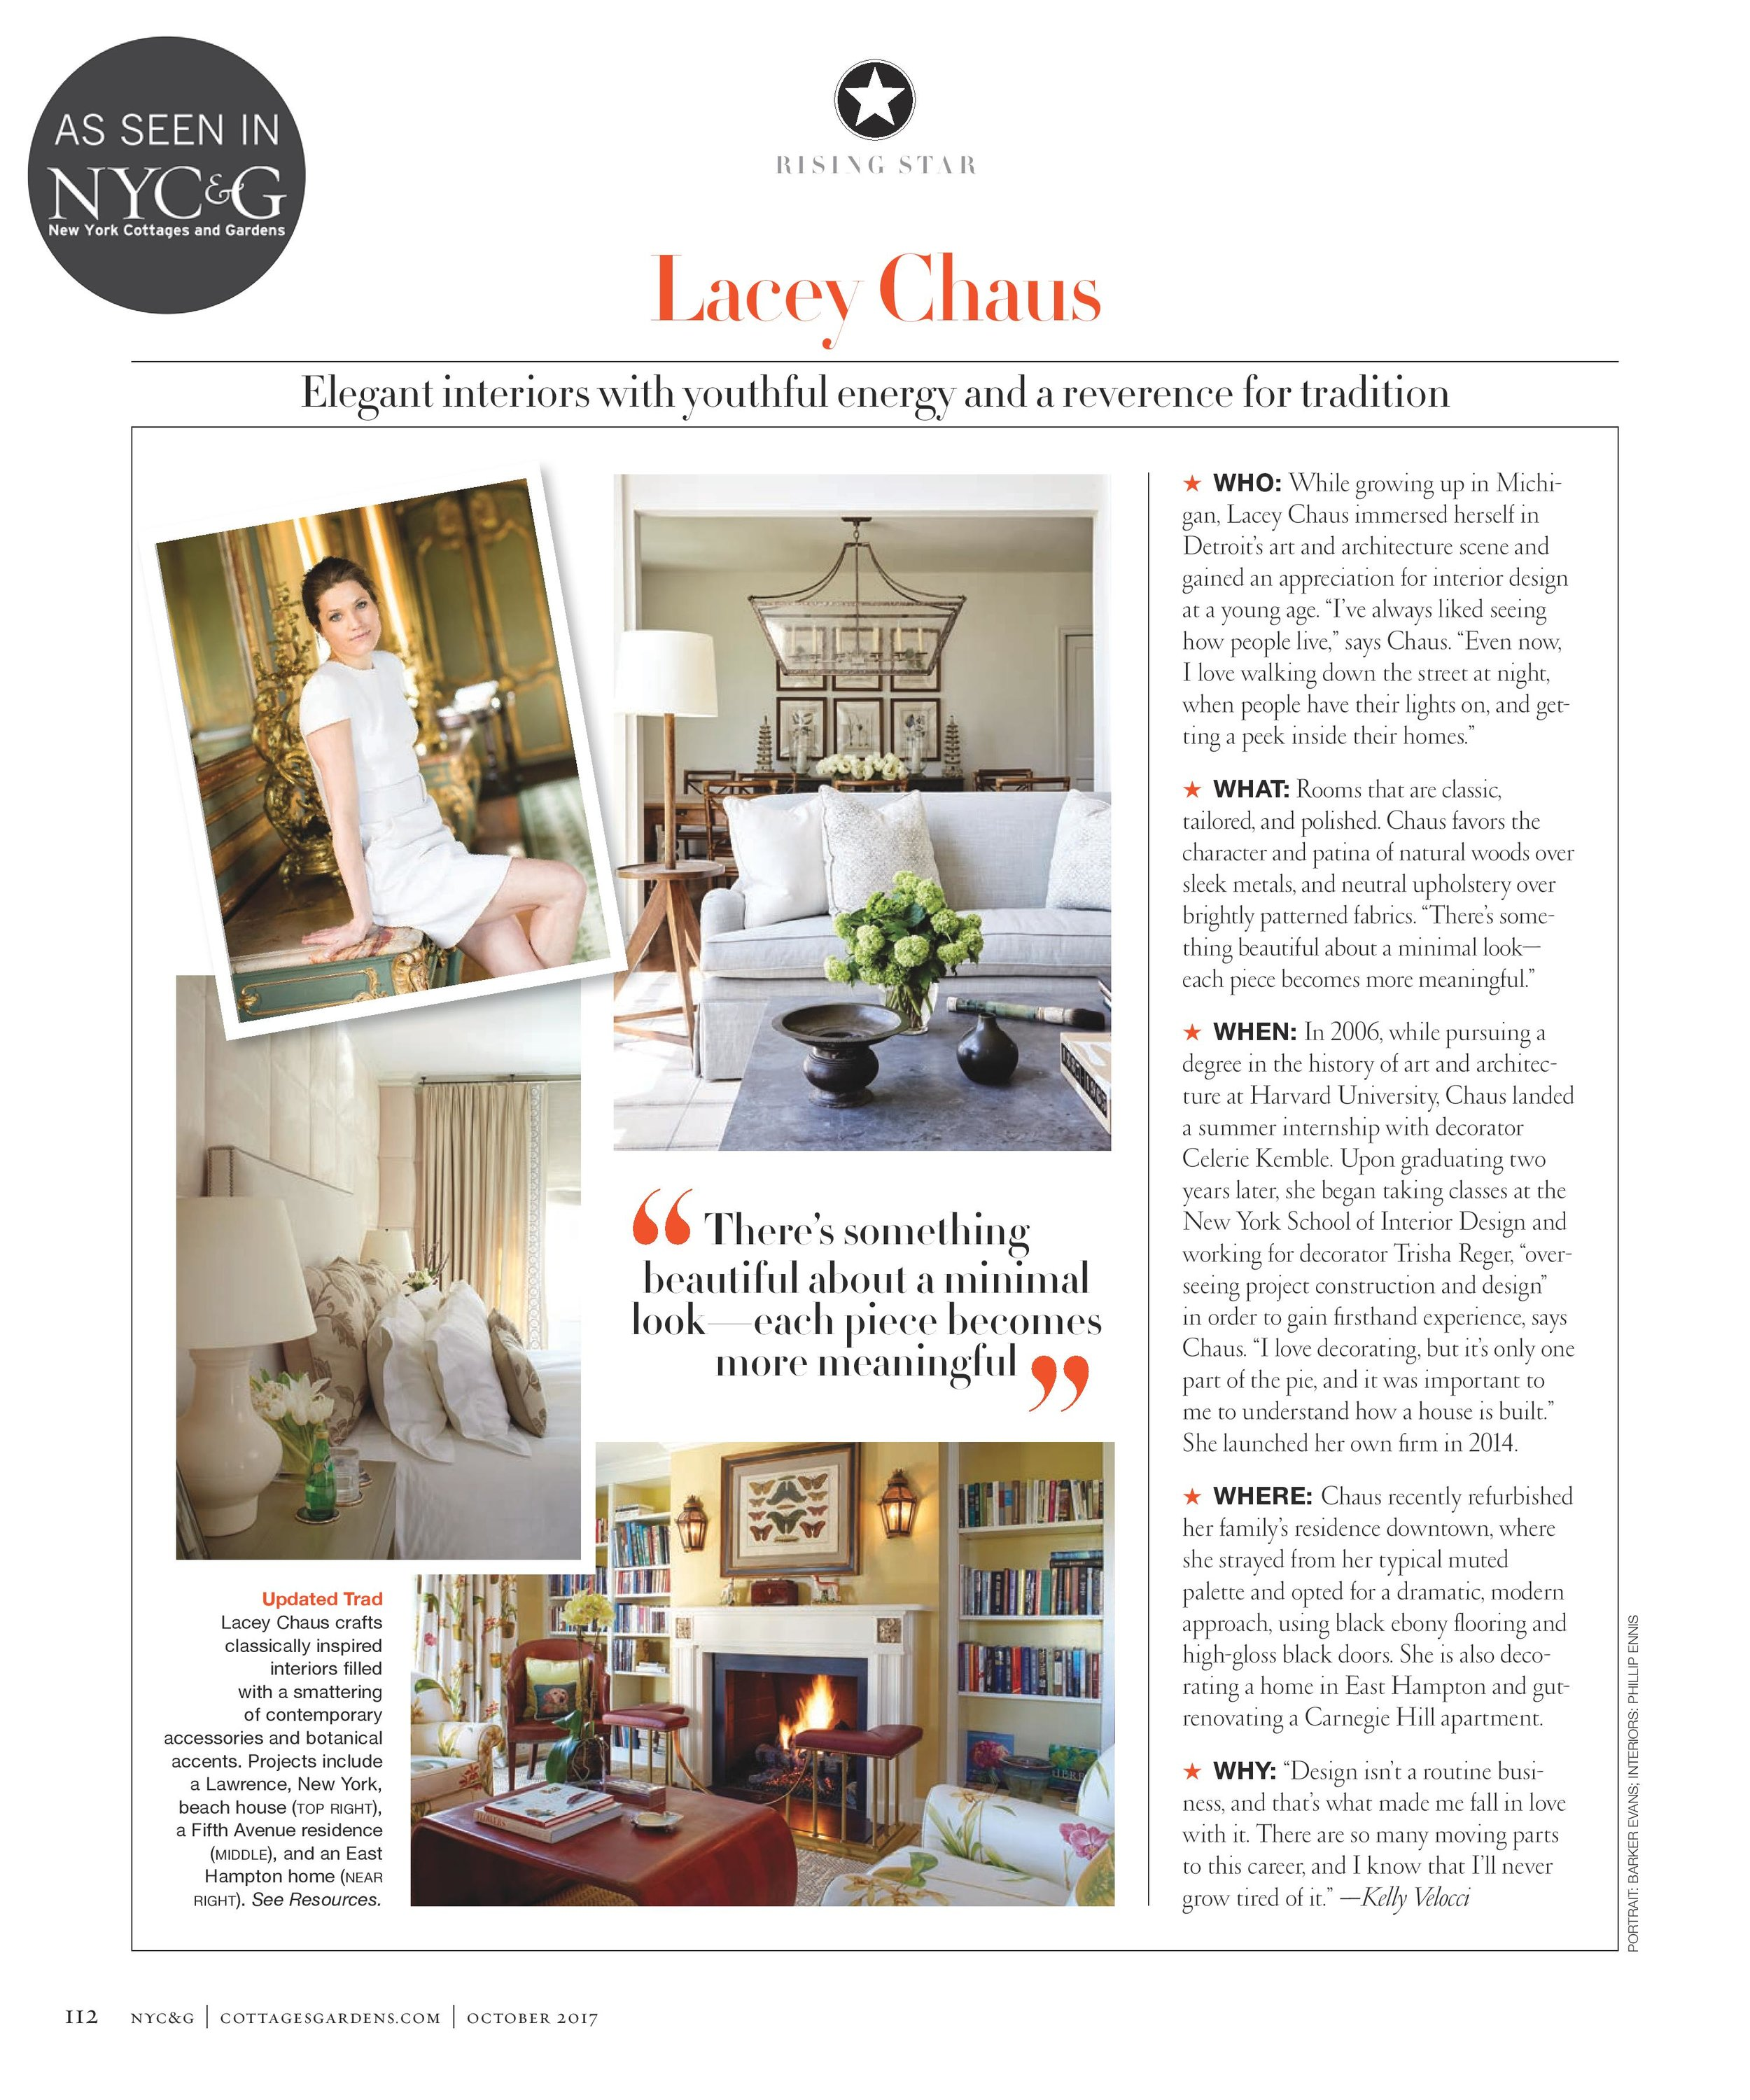 Lacey Chaus NYC&G Rising Star 1017-page-002.jpg